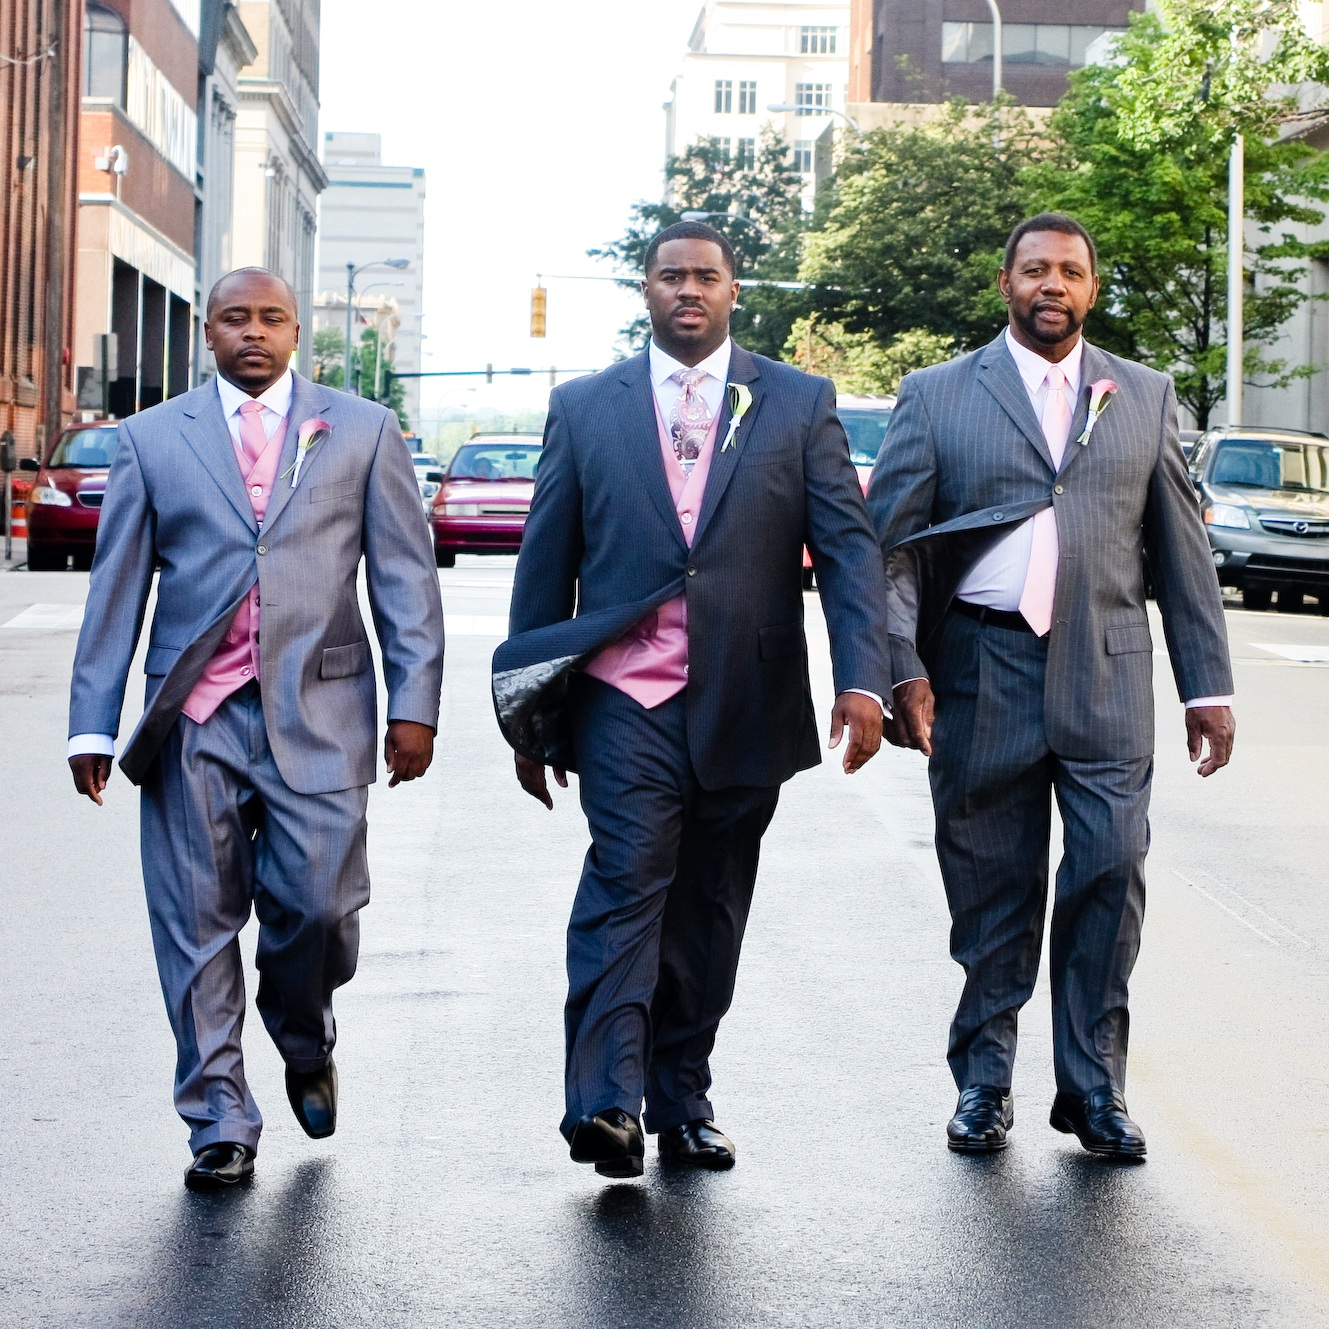 Grooms+Men+Walk